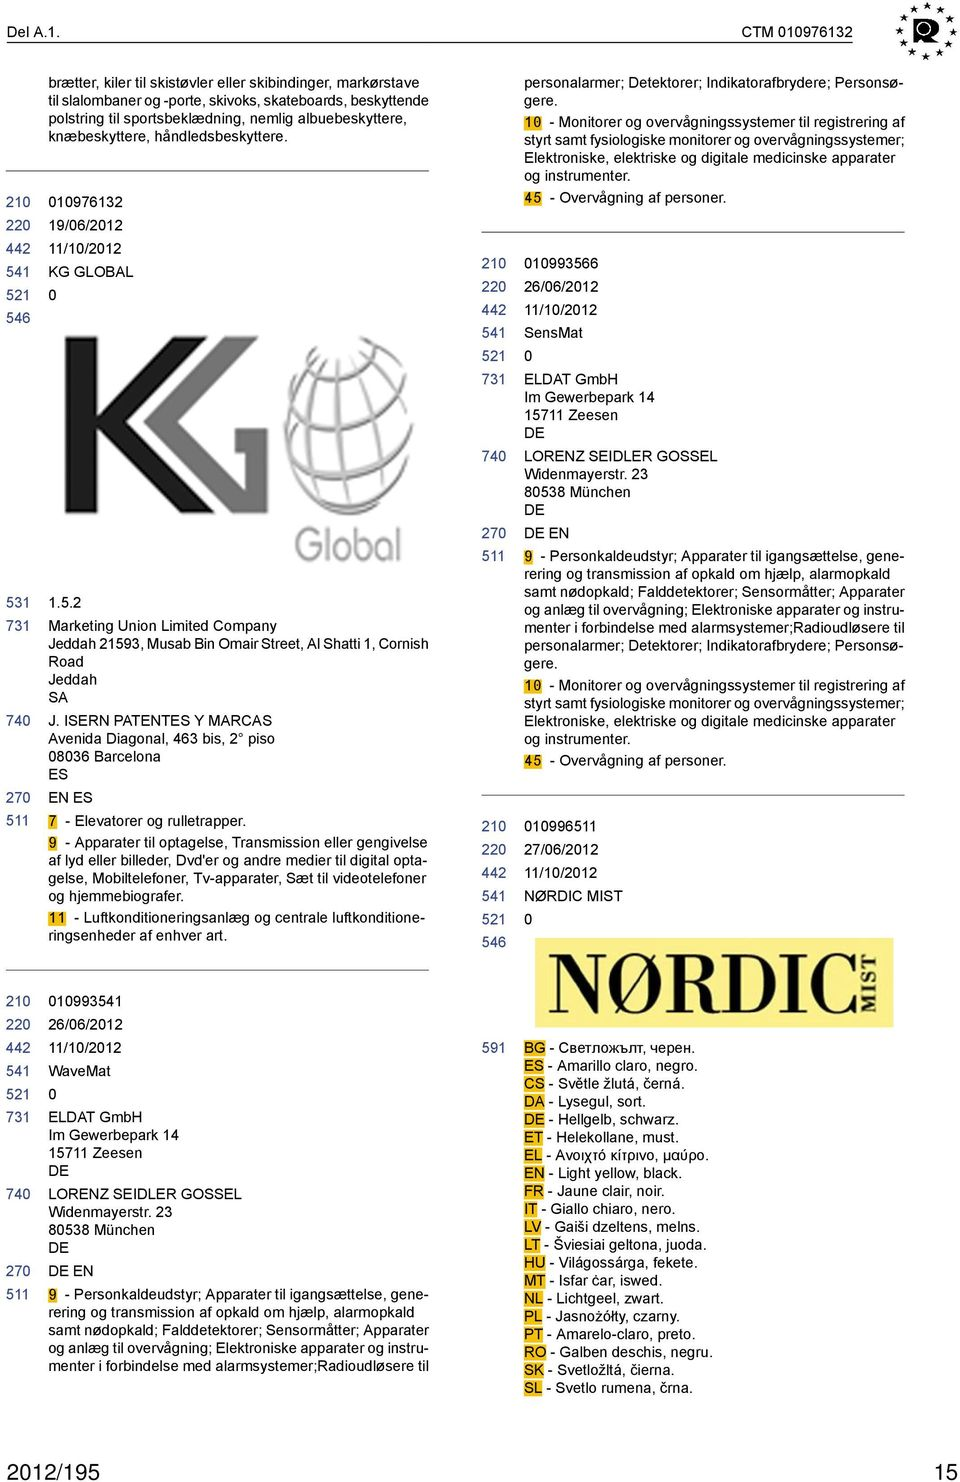 knæbeskyttere, håndledsbeskyttere. 1976132 19/6/212 KG GLOBAL 1.5.2 Marketing Union Limited Company Jeddah 21593, Musab Bin Omair Street, Al Shatti 1, Cornish Road Jeddah SA J.